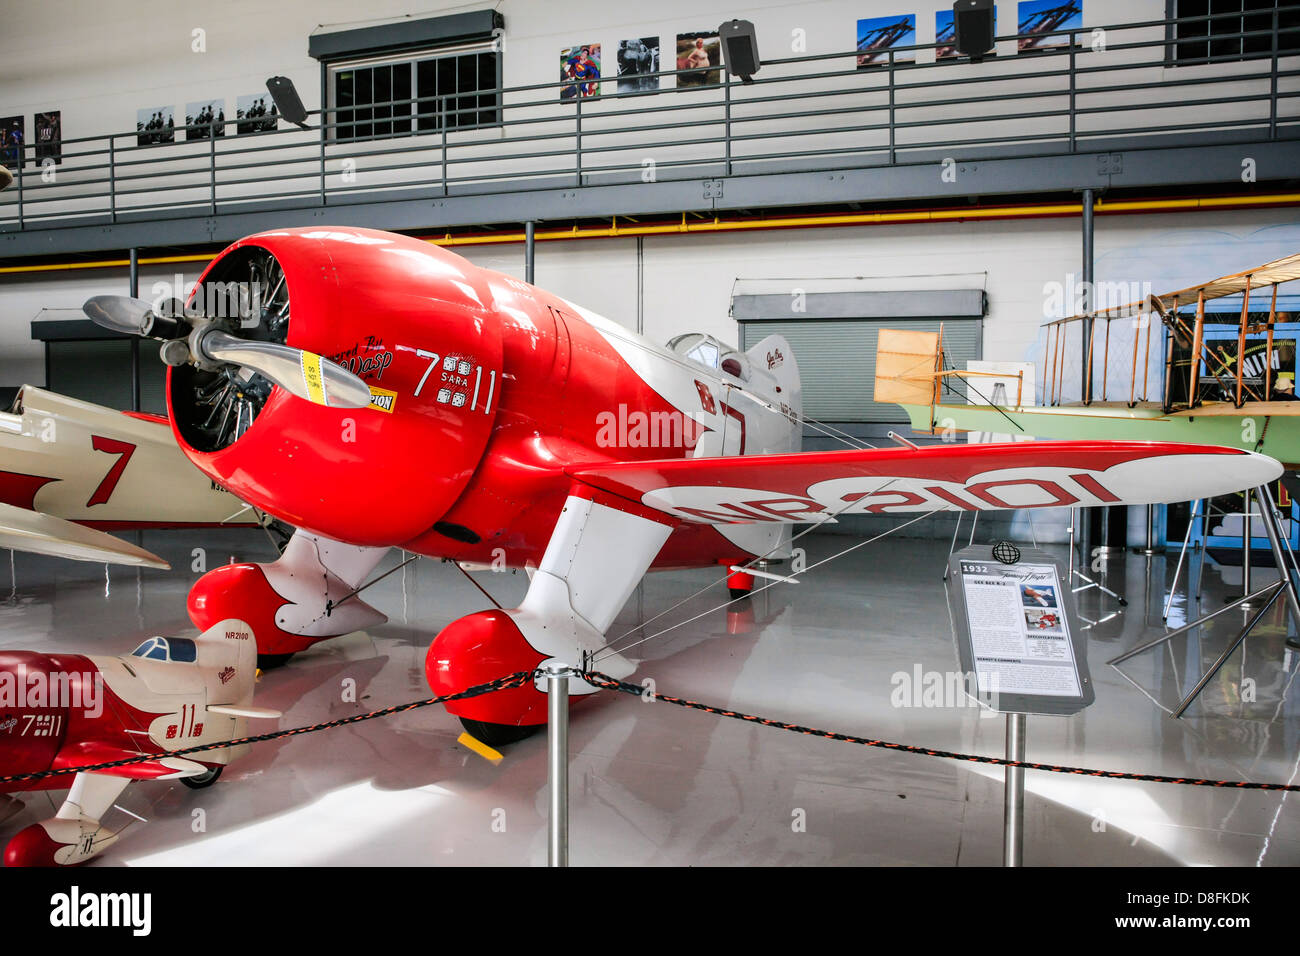 The 1932 Gee Bee R-3 Racing aircraft on display at the Fantasy of Flight Museum, Polk City FL - Stock Image